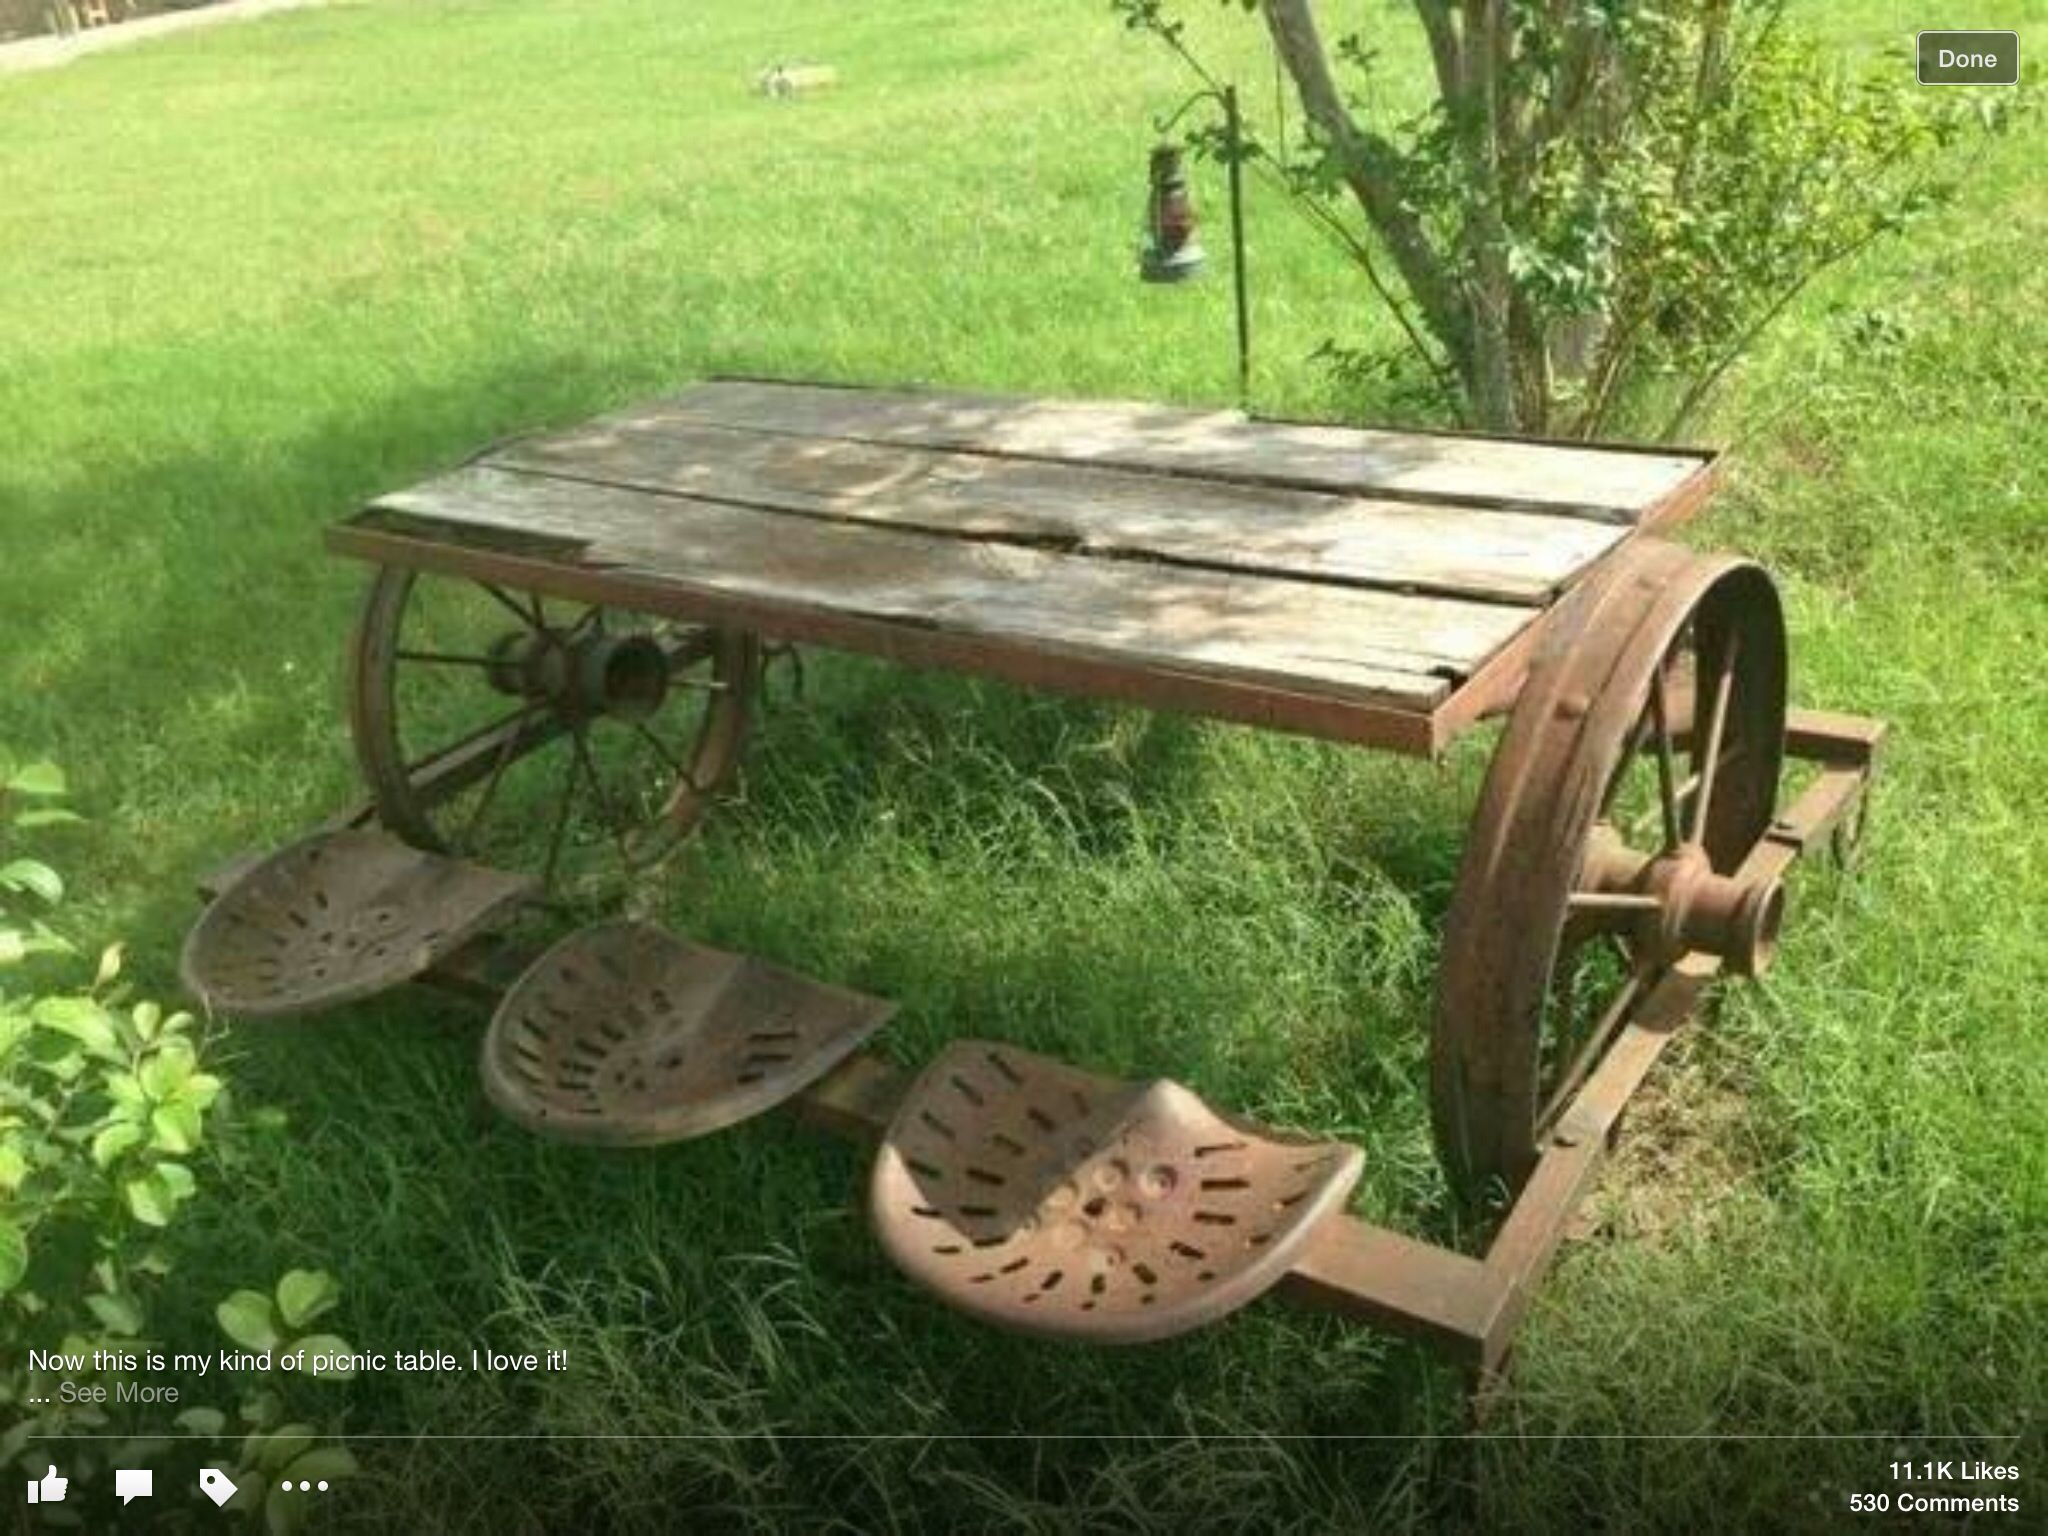 Great Rustic Wagon Wheel Wood Picnic Table With Tractor Seats U003cu003e (farm)